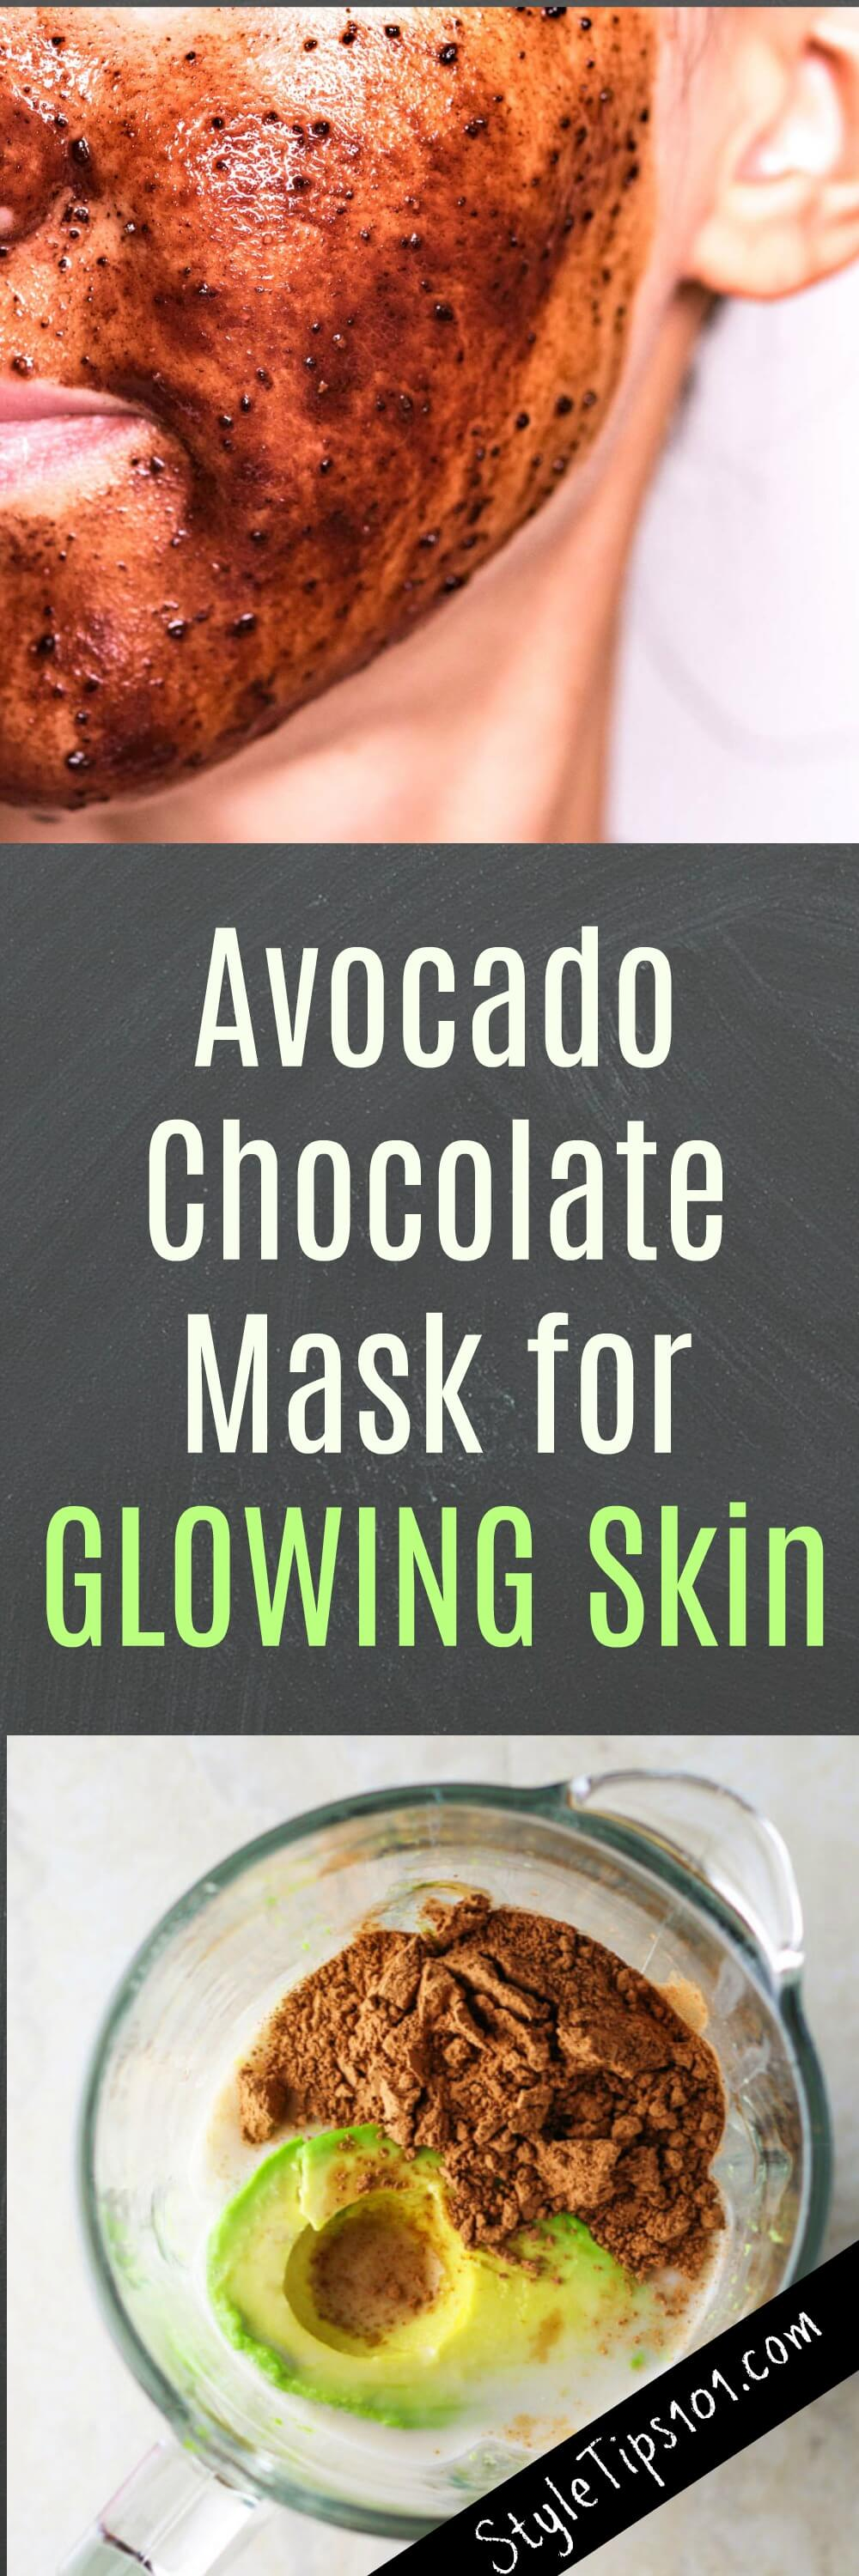 This DIY glowing face mask with cocoa & avocado will nourish and hydrate even the driest of skin and leave skin super soft and glowing.